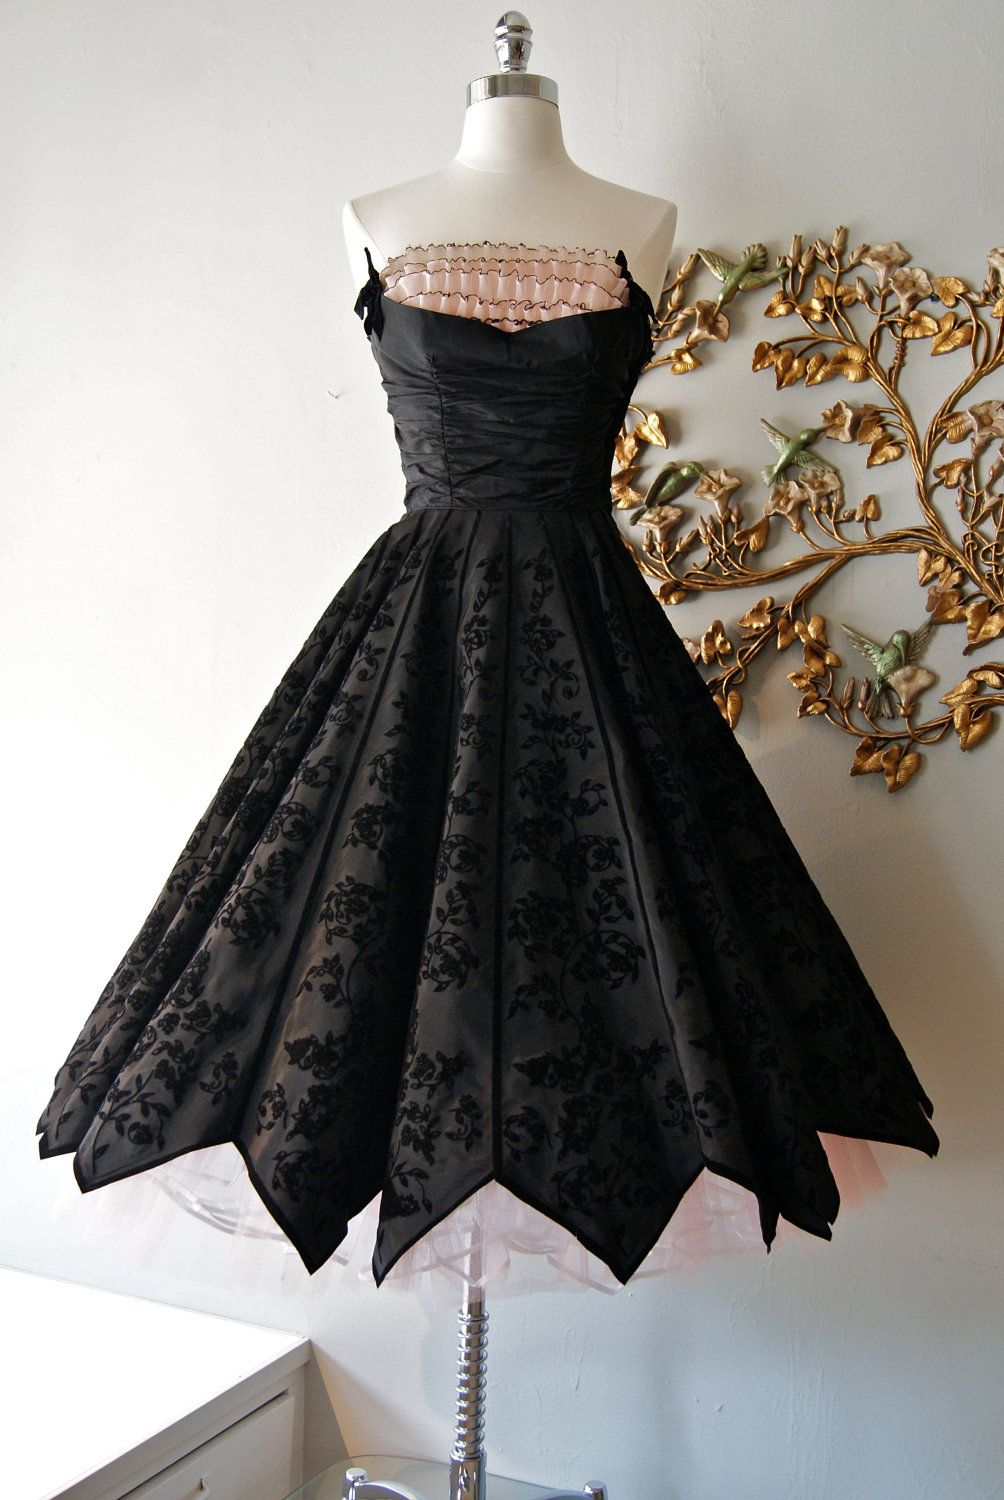 Reserveds party dress s black and pink strapless prom